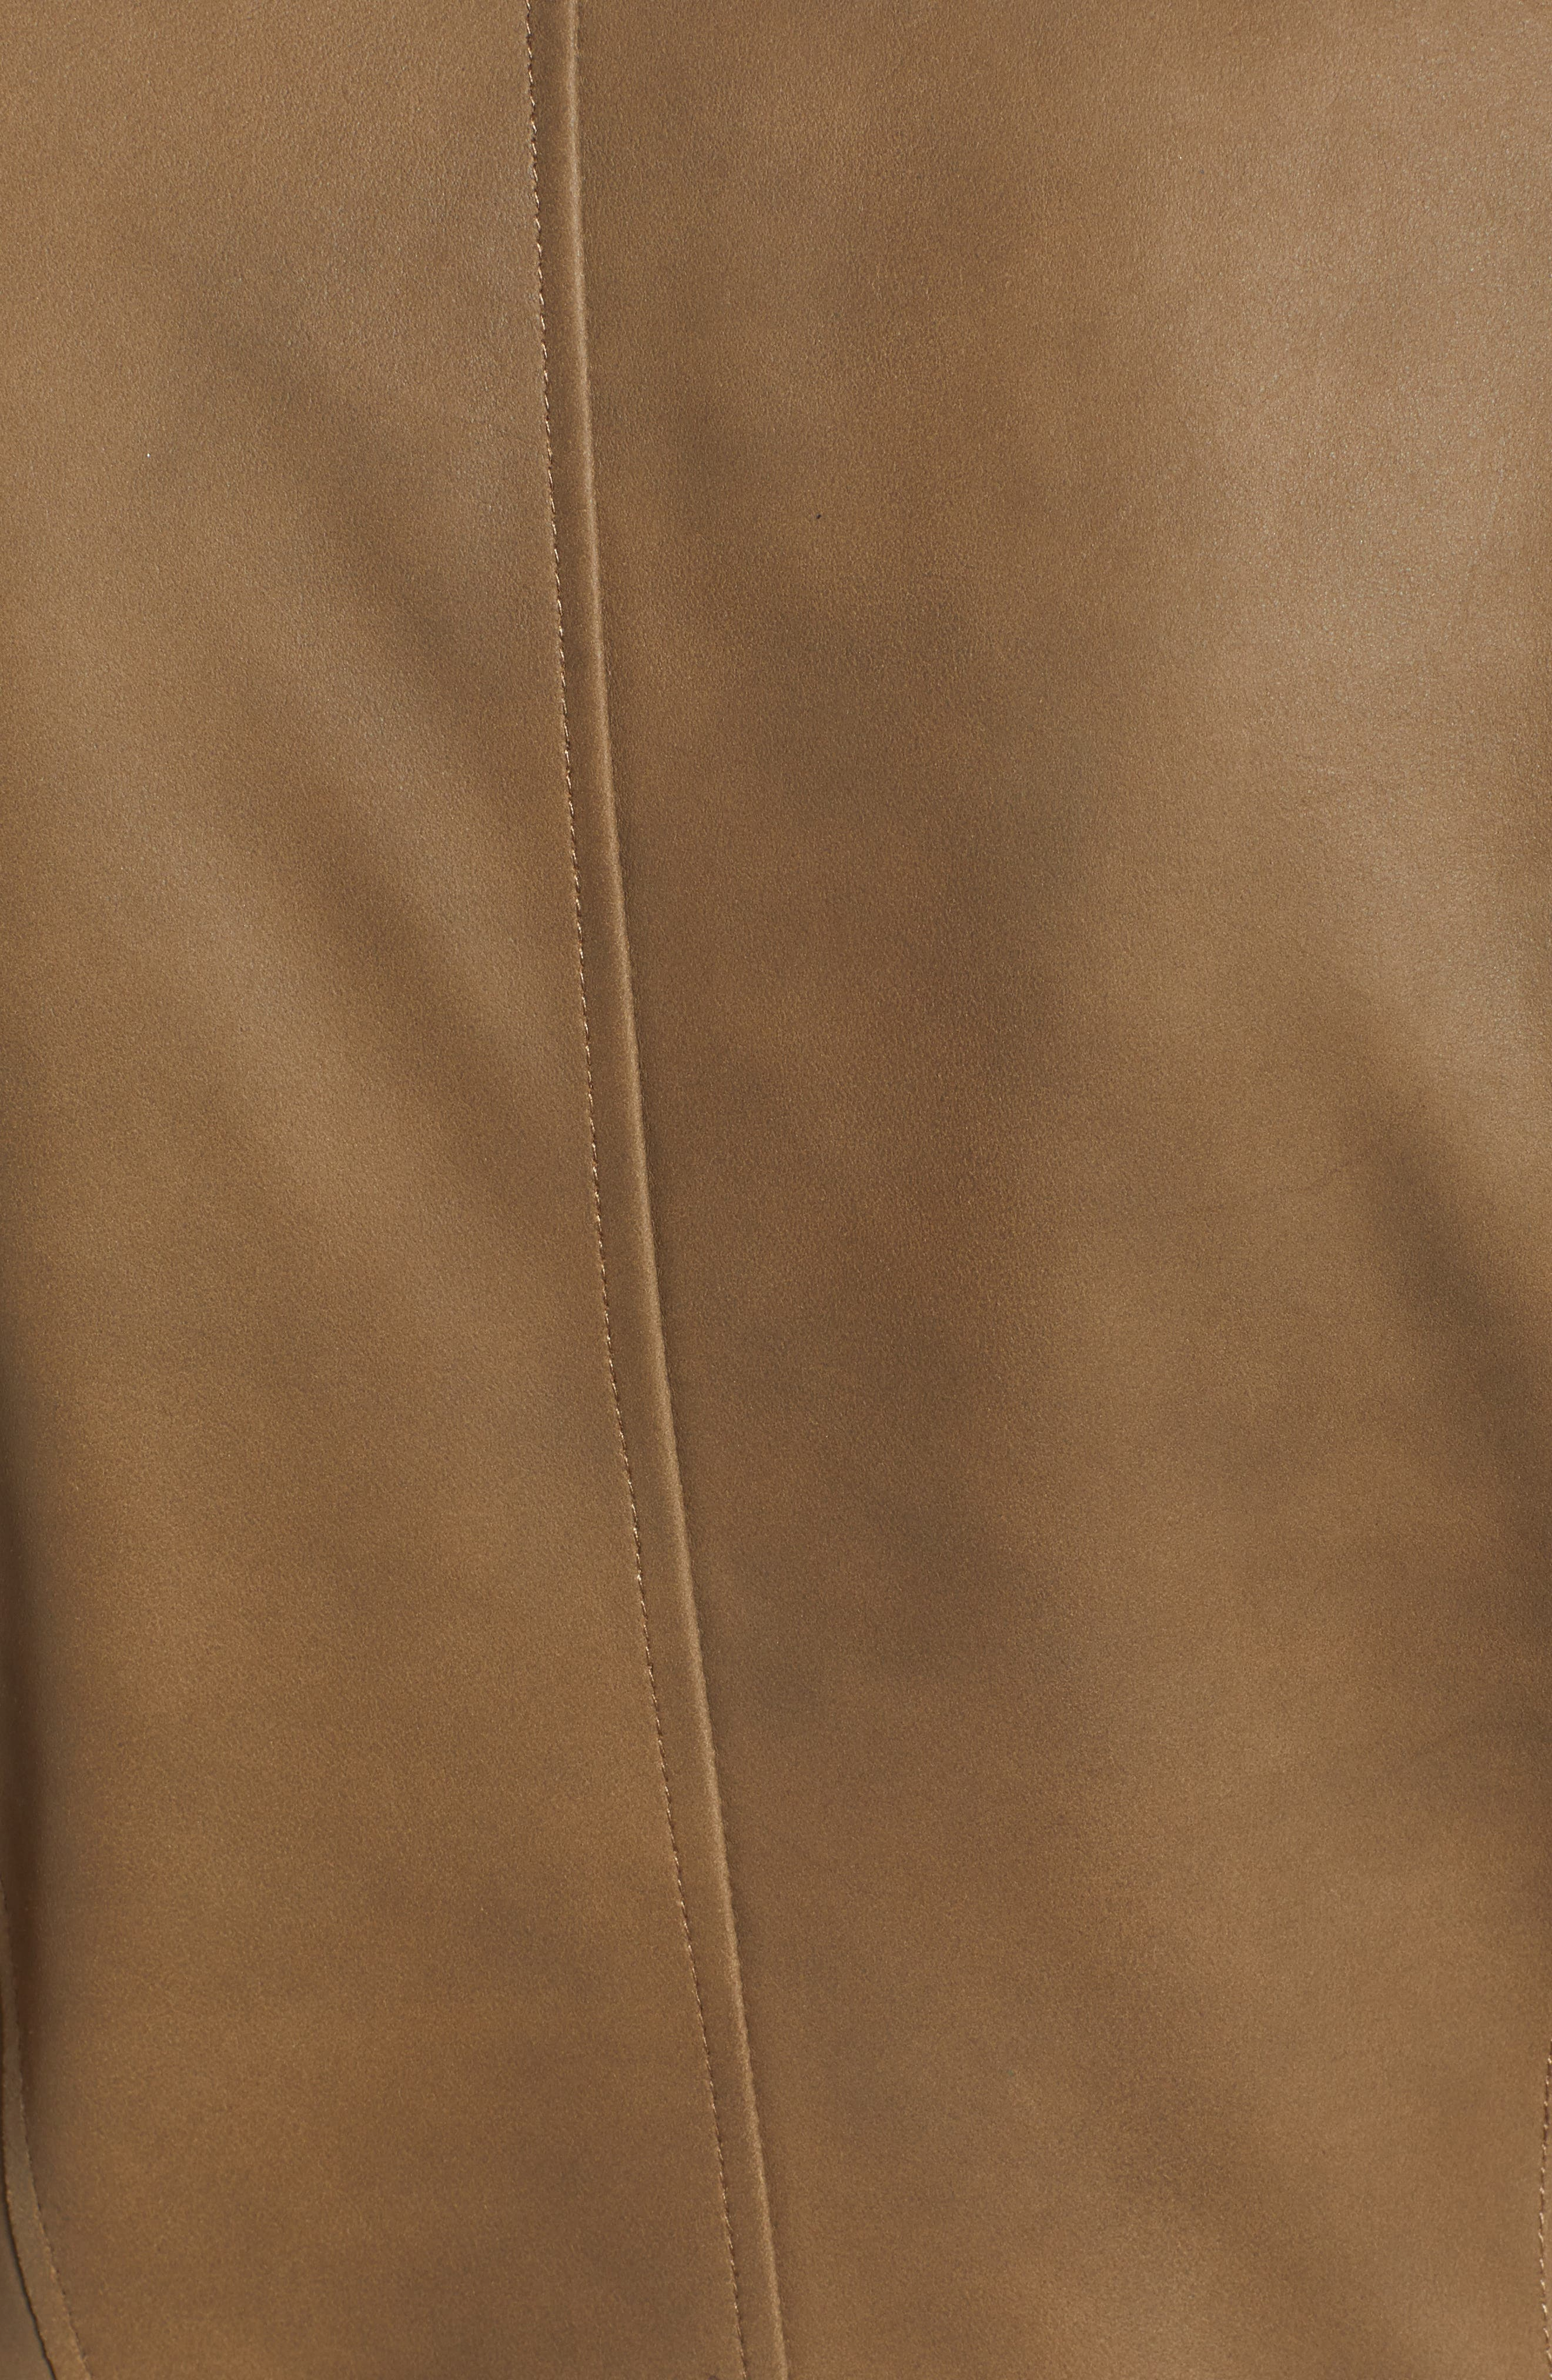 Asymmetrical Zip Front Leather Cascade Jacket,                             Alternate thumbnail 6, color,                             TAUPE